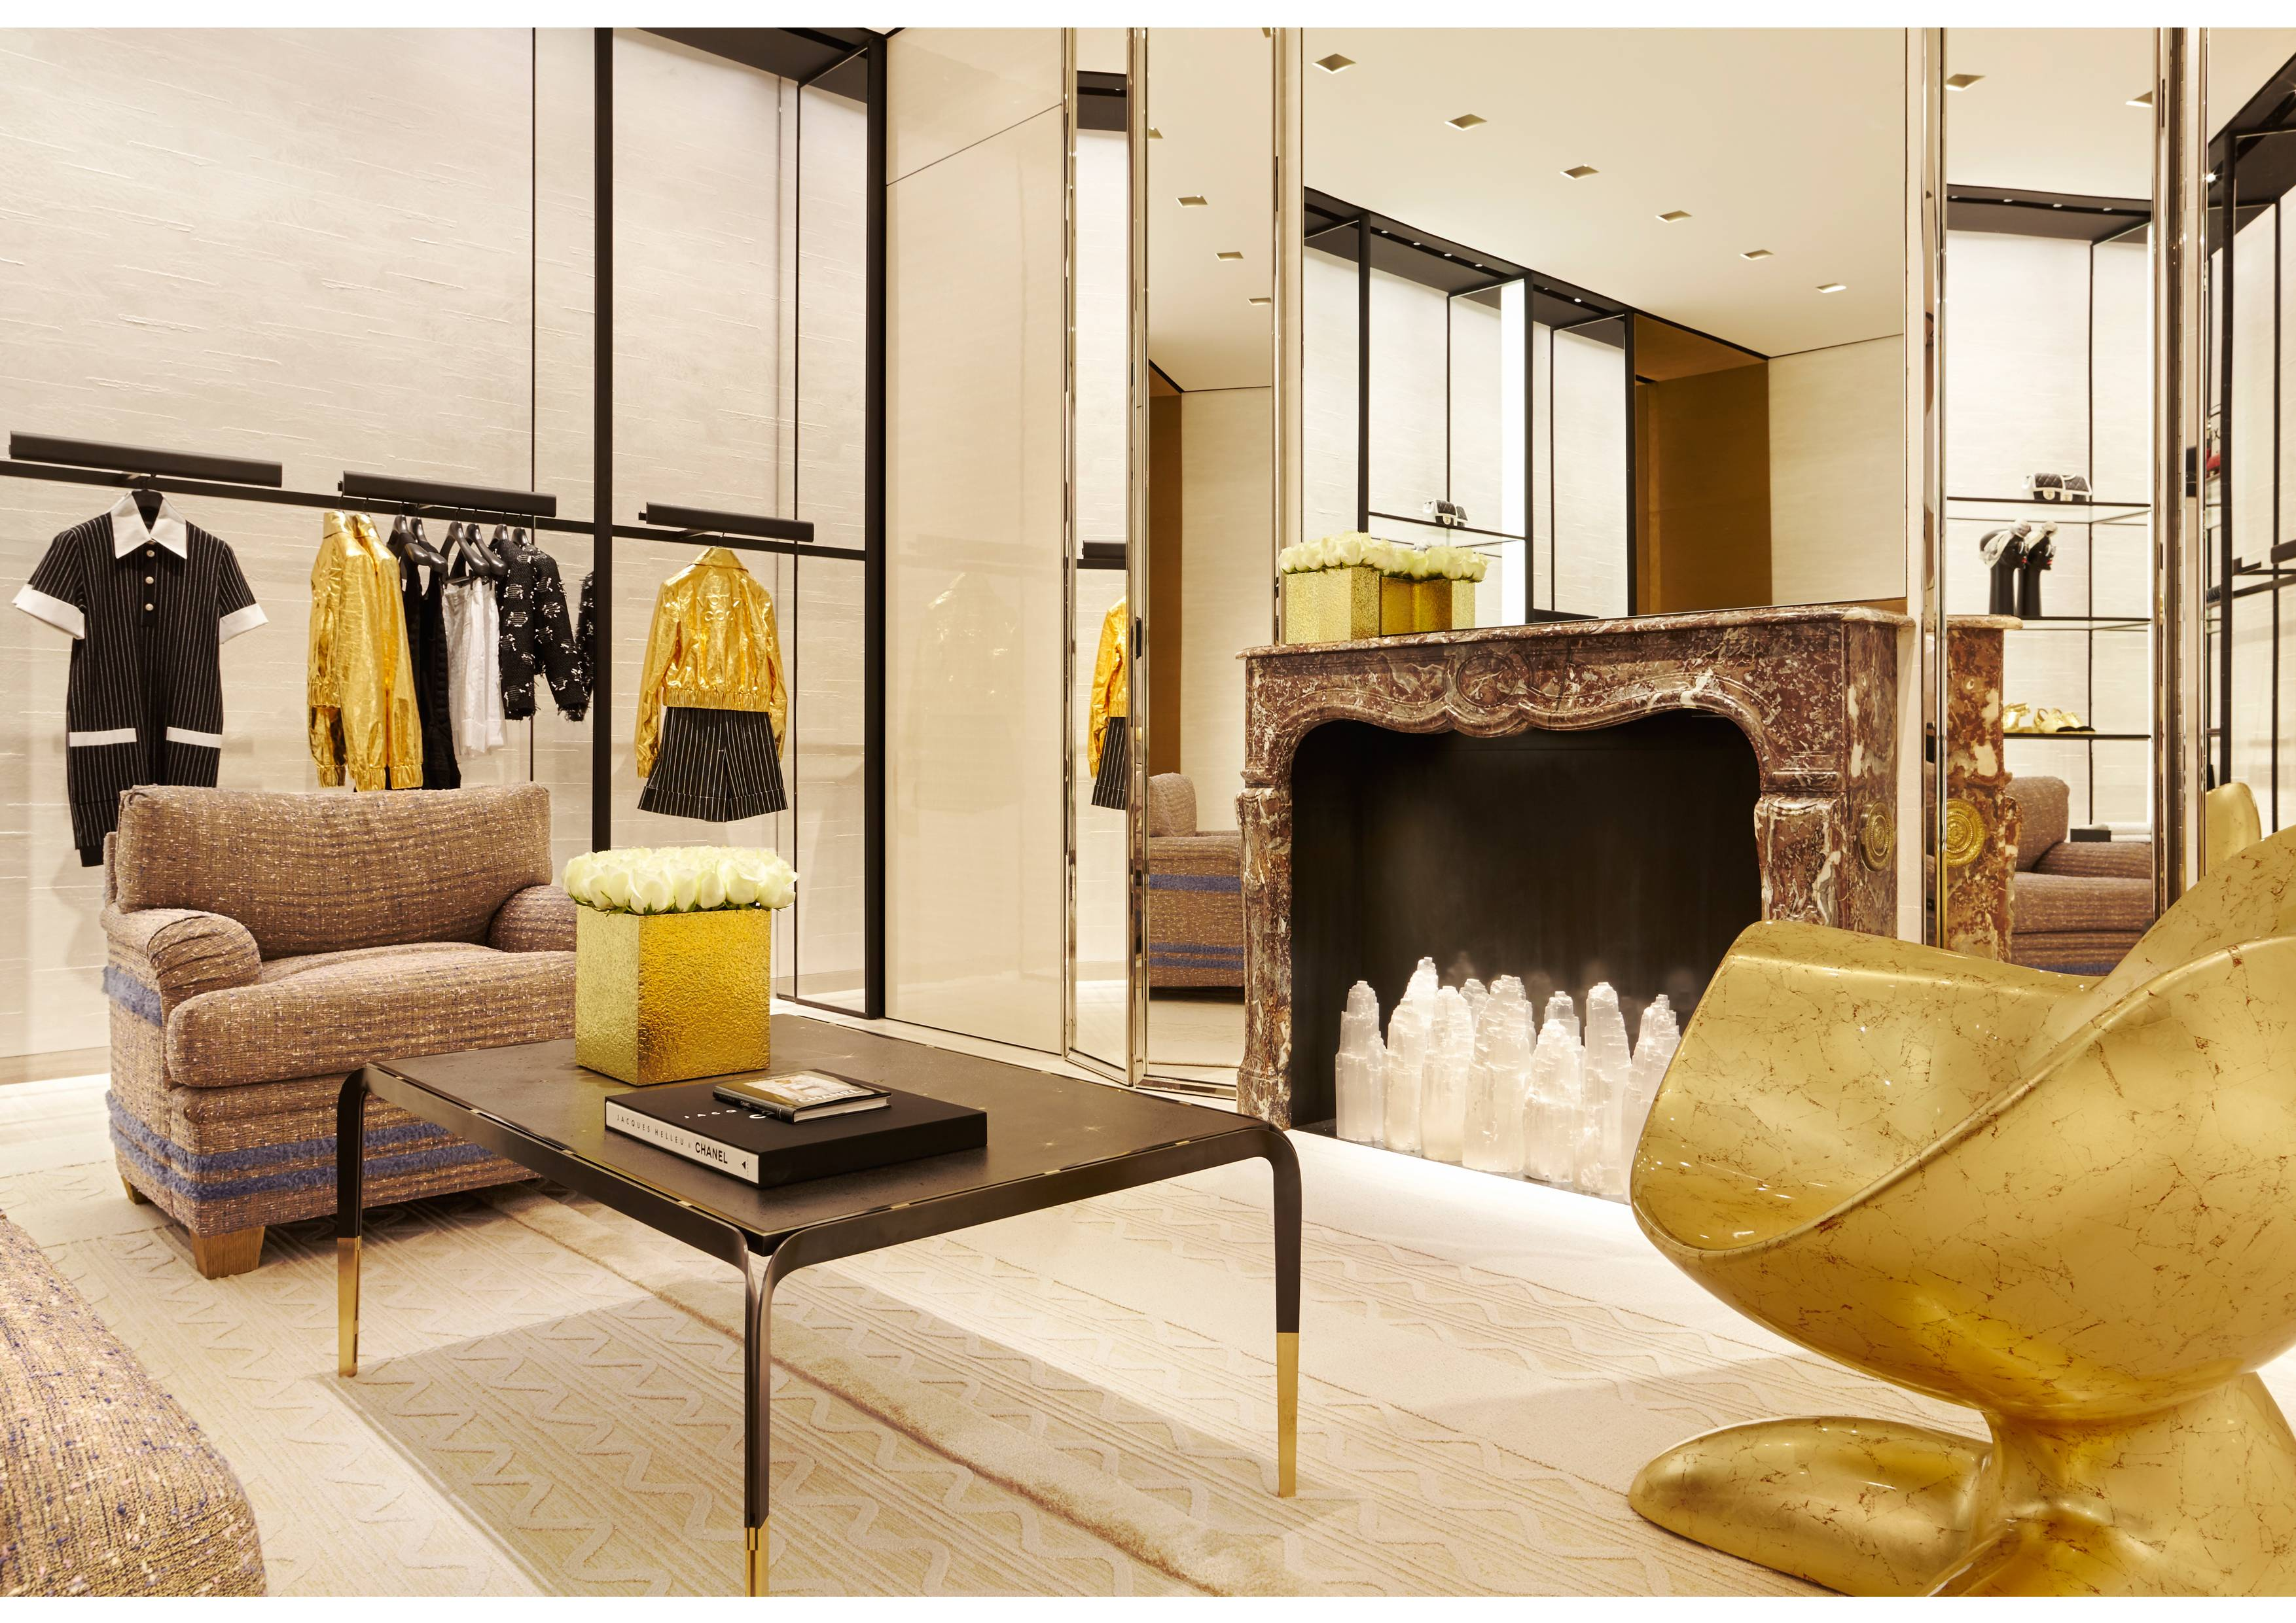 la chanel at south coast plaza gets a golden makeover south coast plaza boutique pictures by sam frost 007